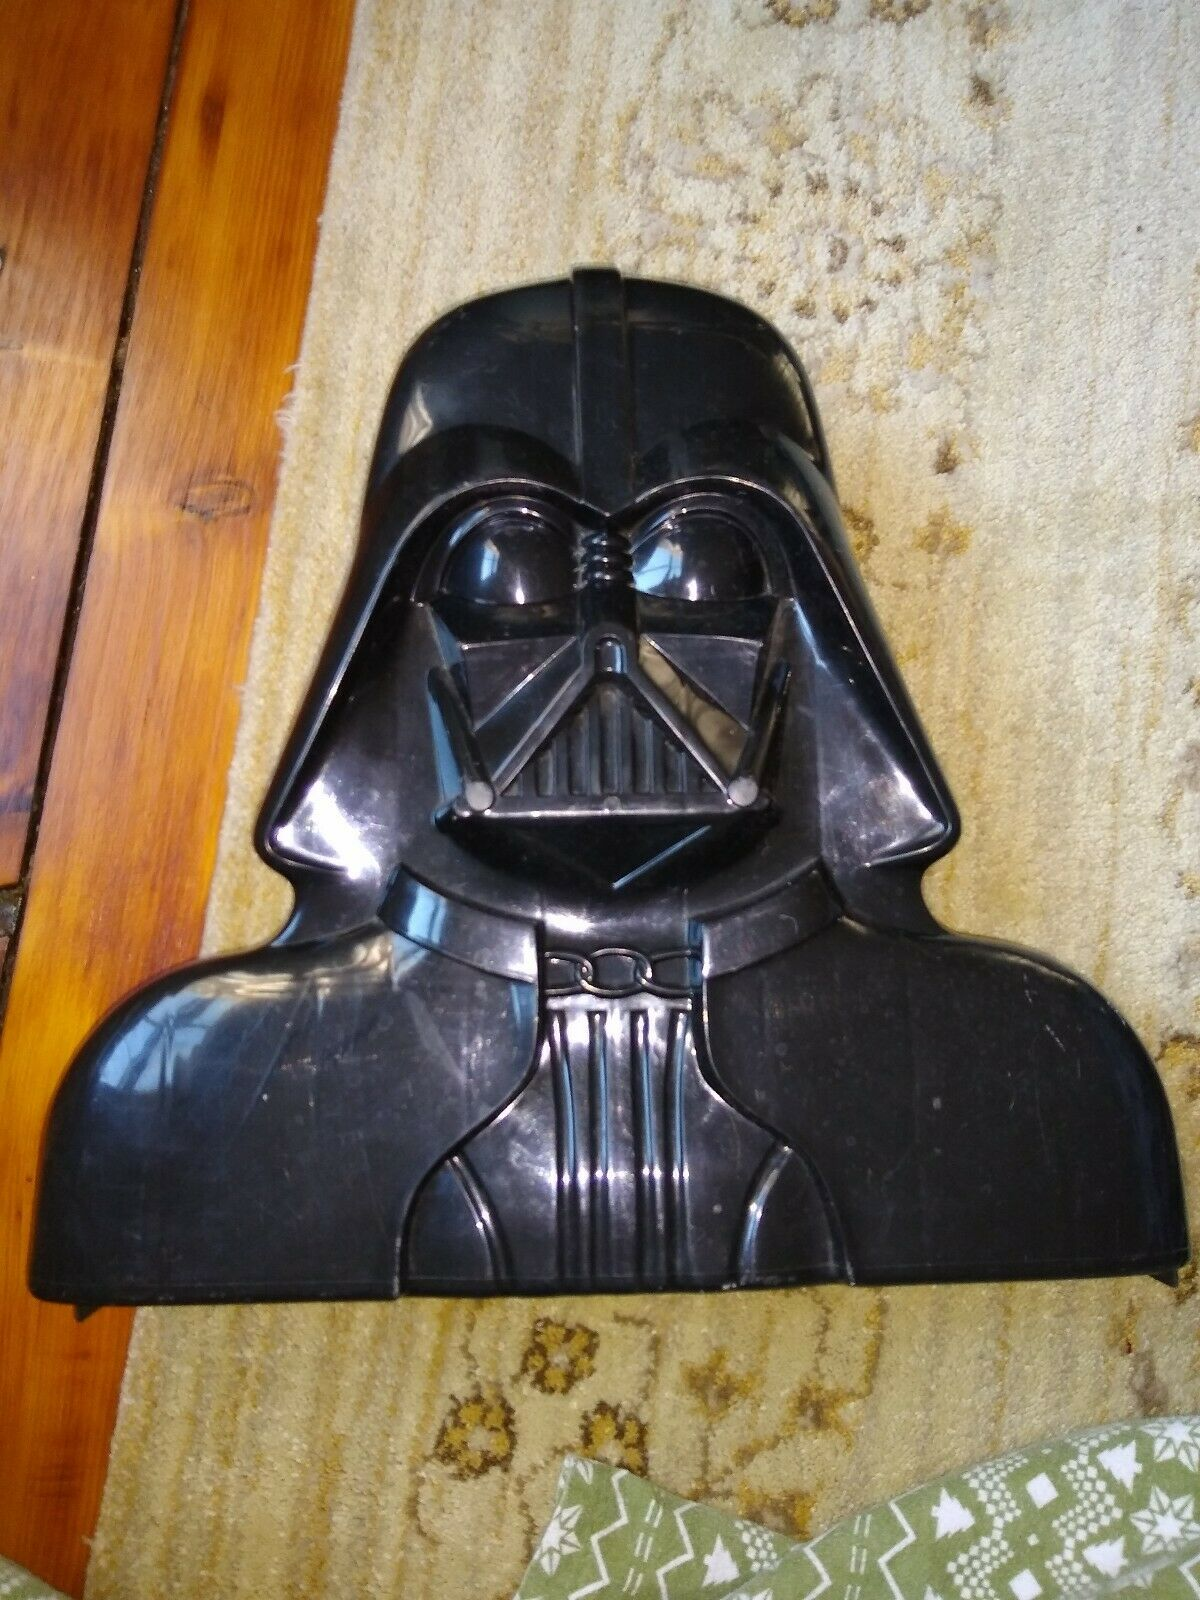 STAR WARS VADER The Empire Strikes Back Accessory Storage Chamber With Toys